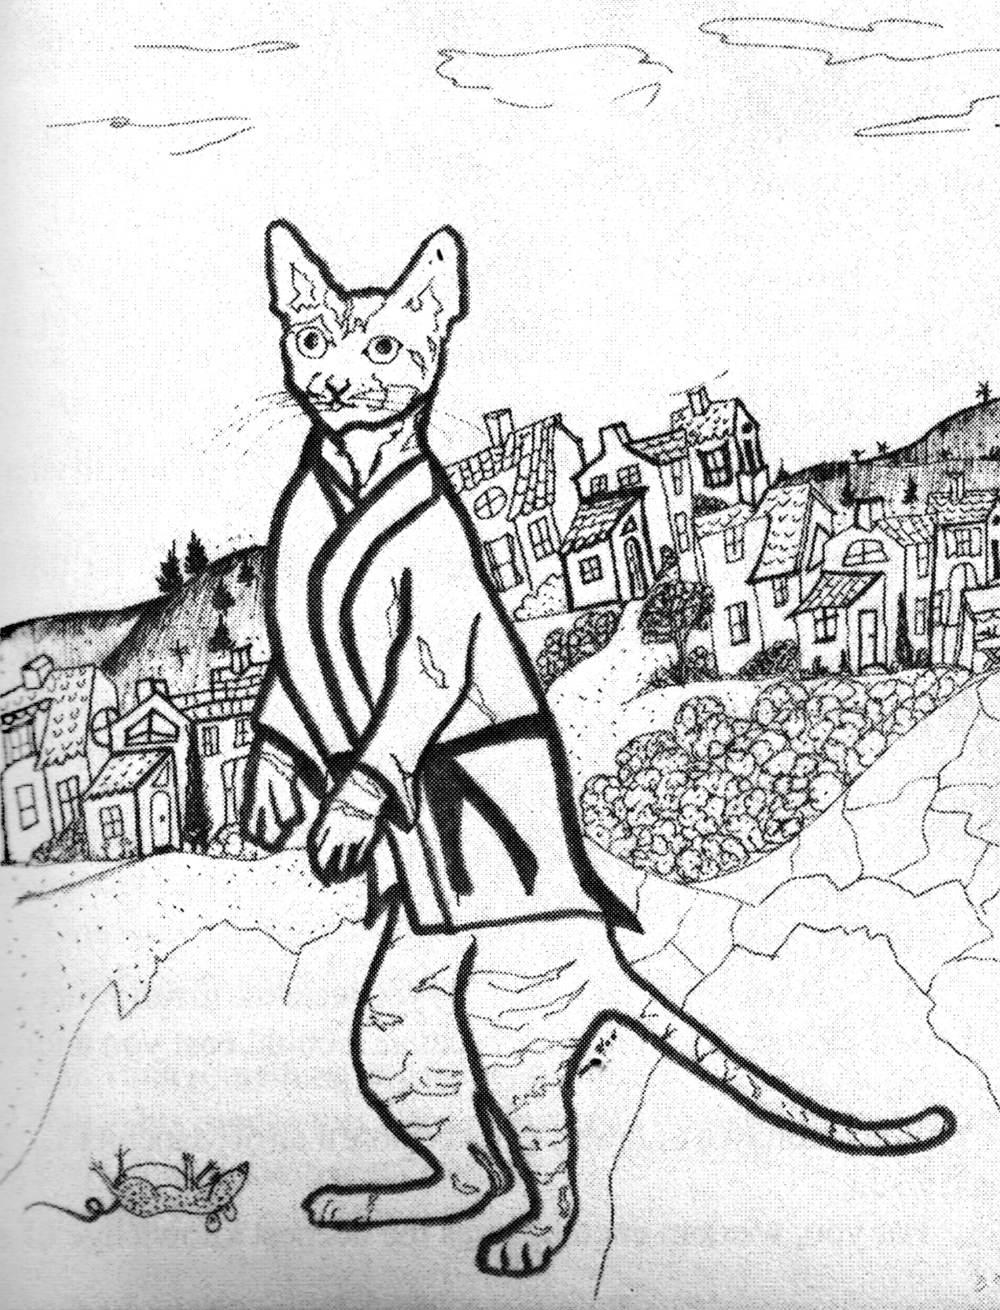 Illustration from The Philosophy Of My Wandering Cat